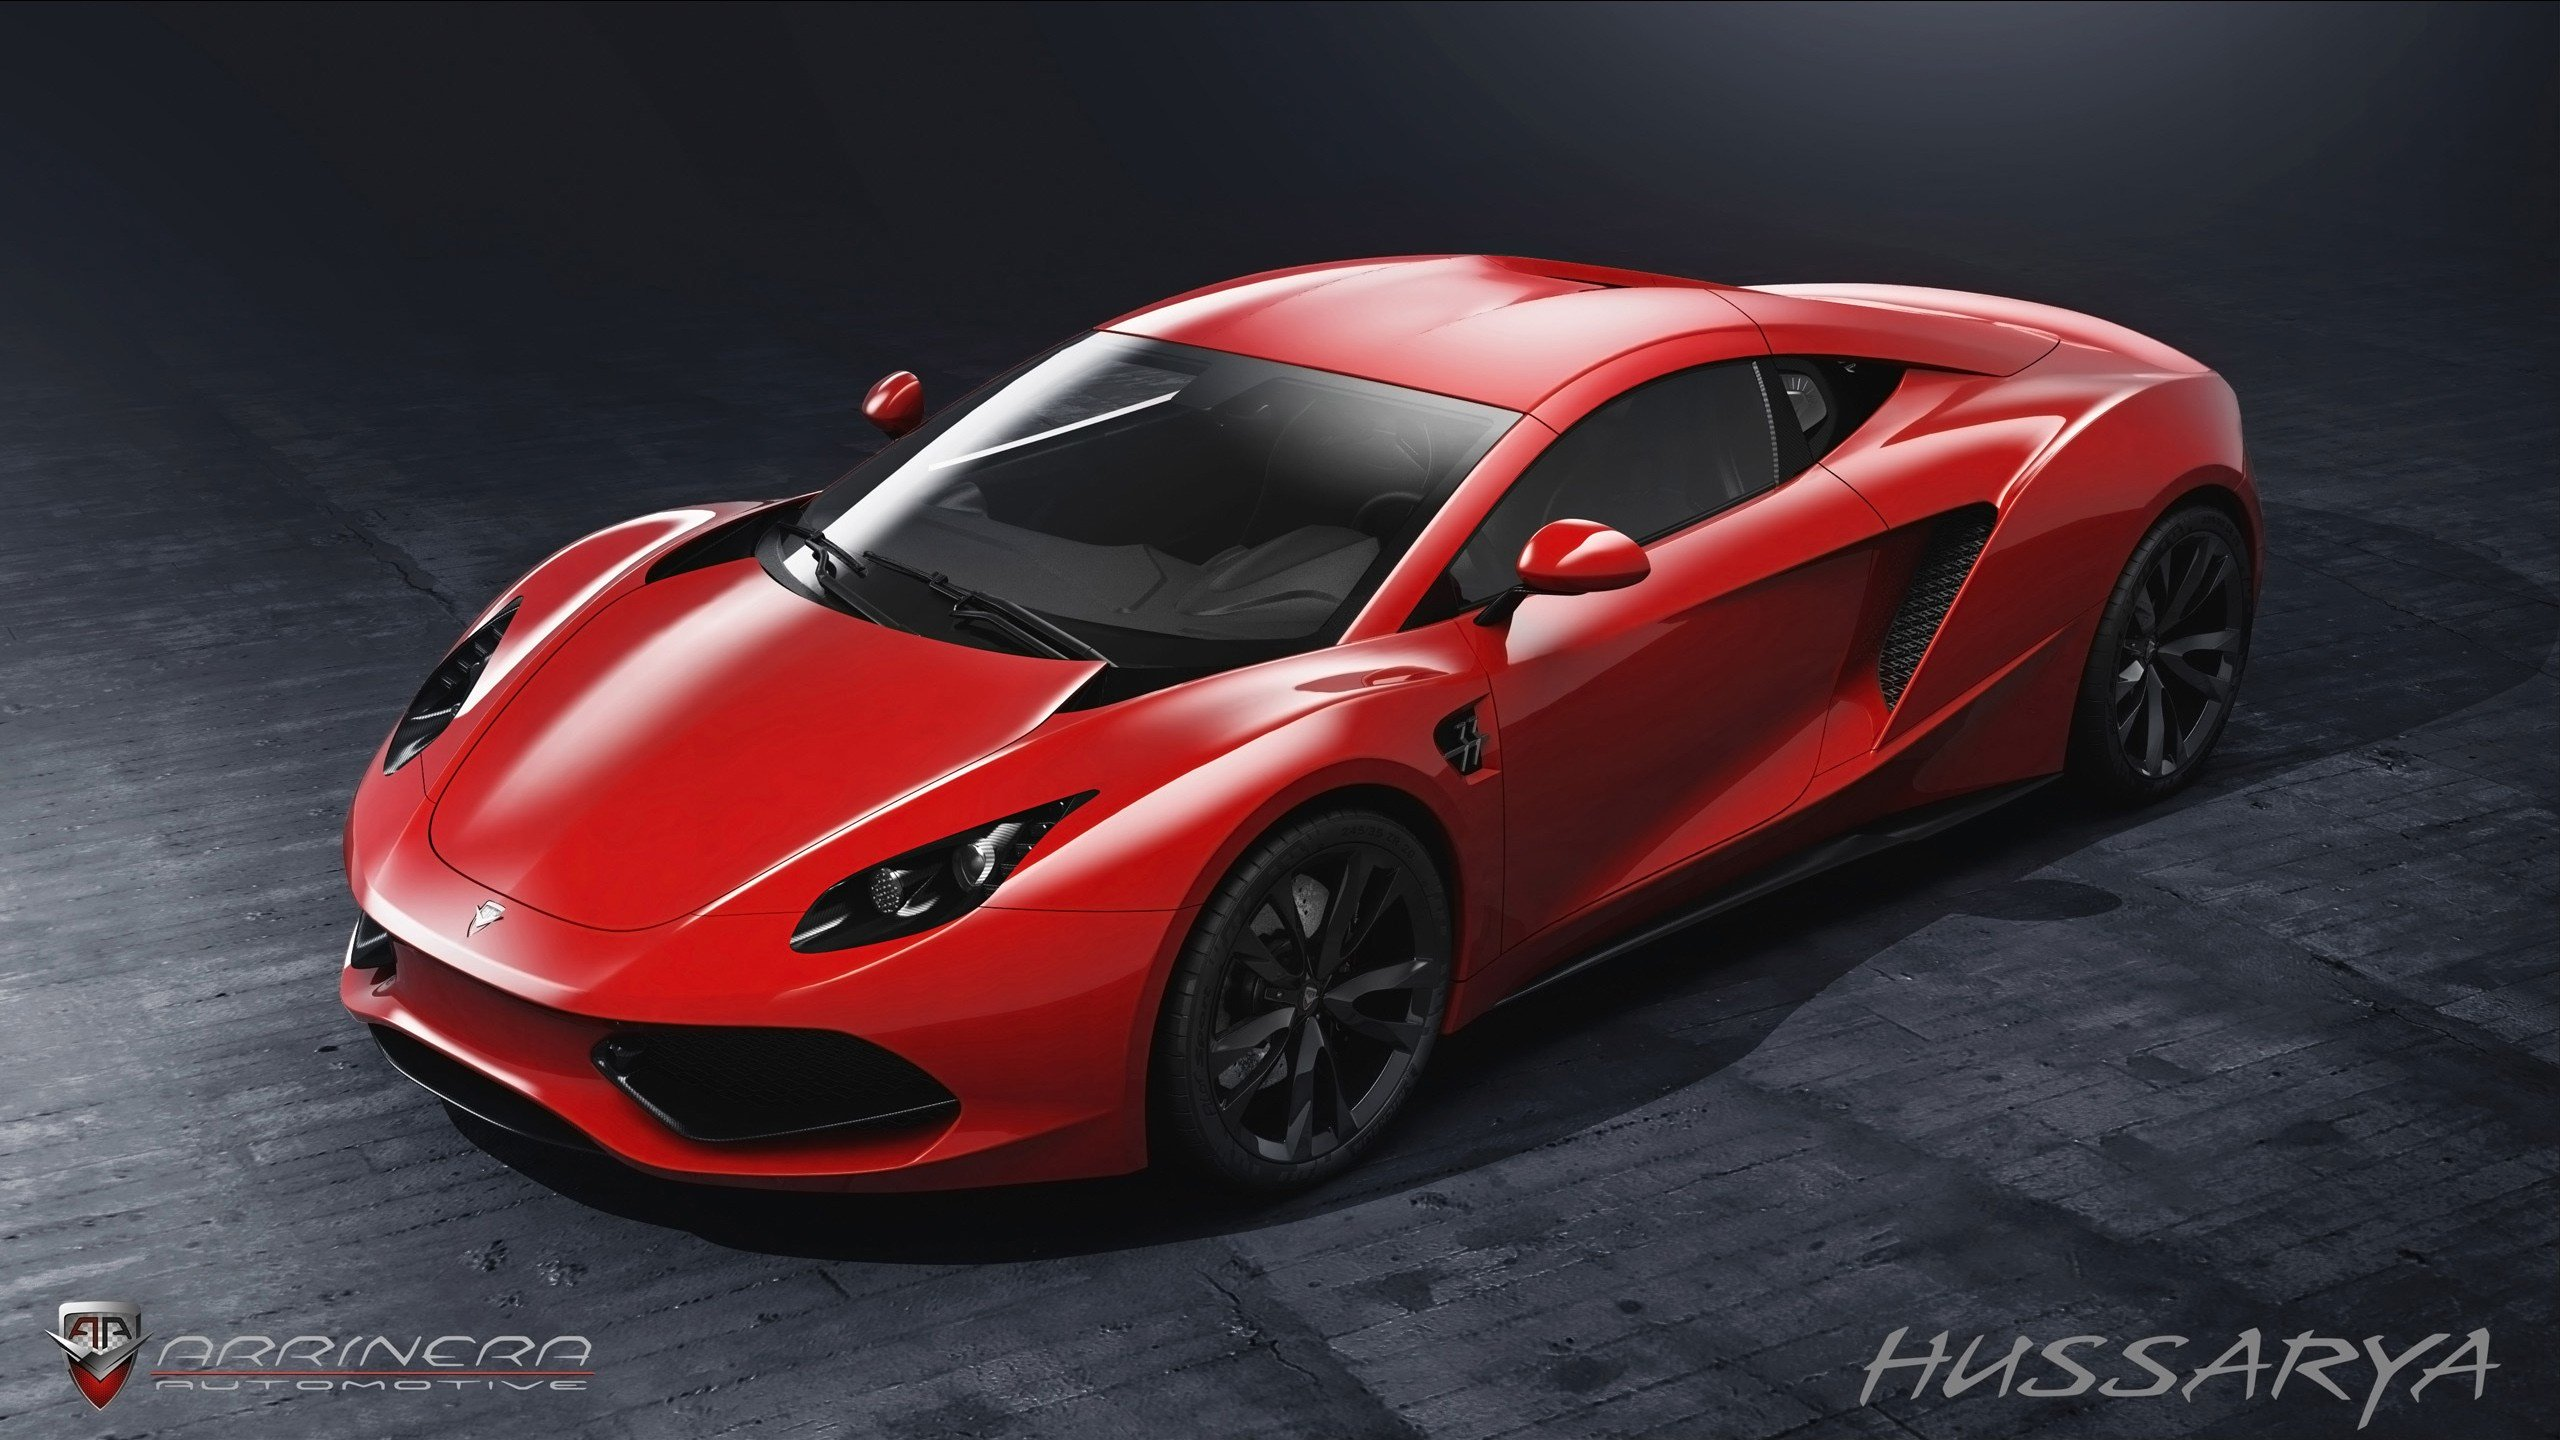 Latest 2014 Arrinera Hussarya Wallpaper Hd Car Wallpapers Id Free Download